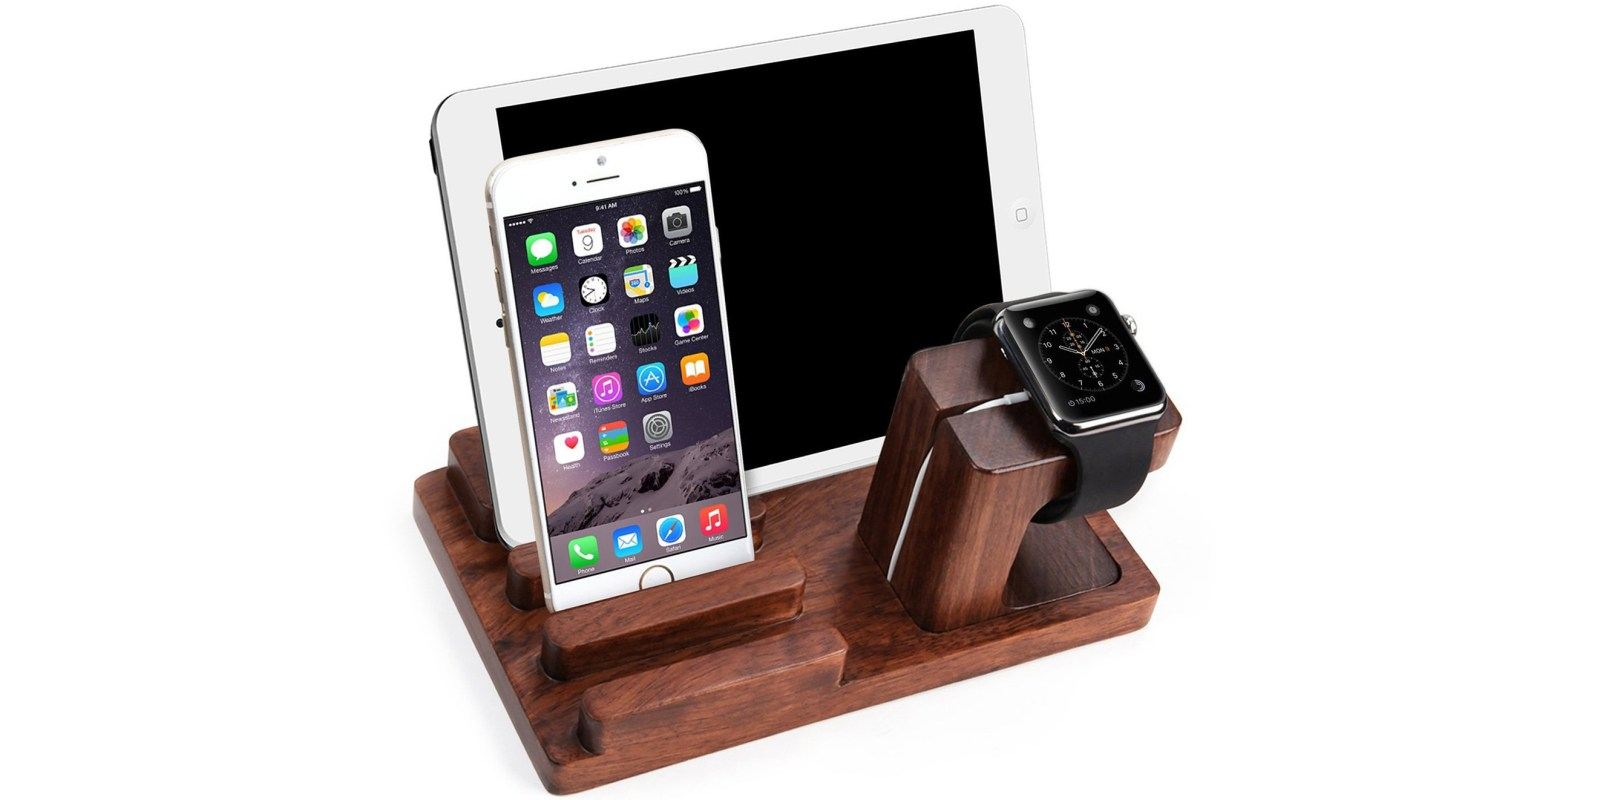 Dock your iPhone, iPad and Apple Watch with this Rosewood Desk Stand for $20 Prime shipped